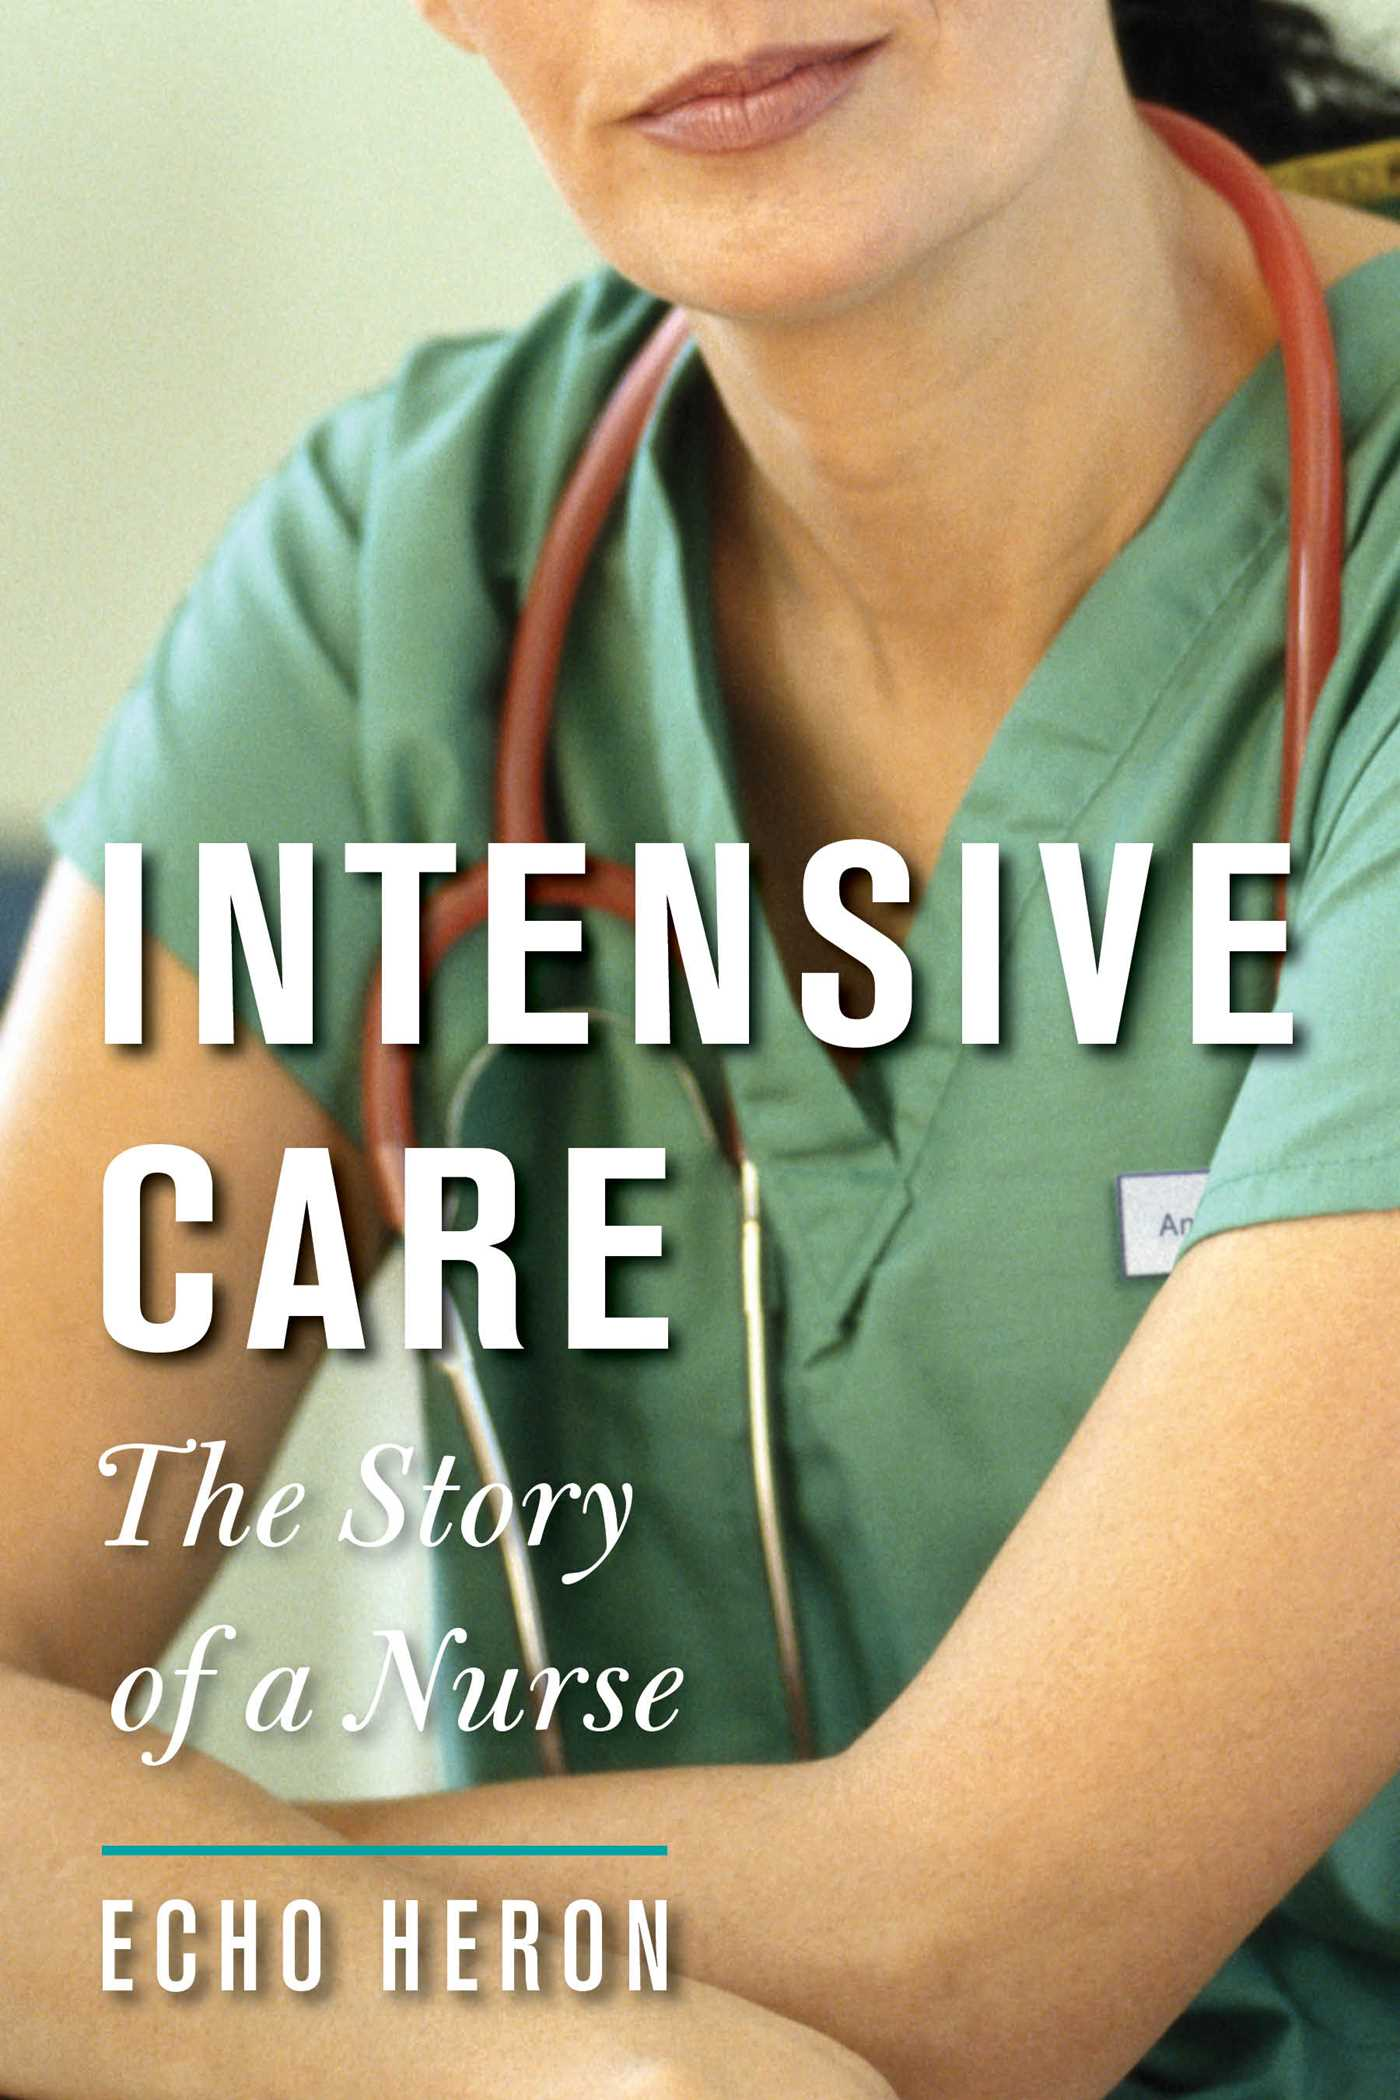 Intensive care 9781451665567 hr